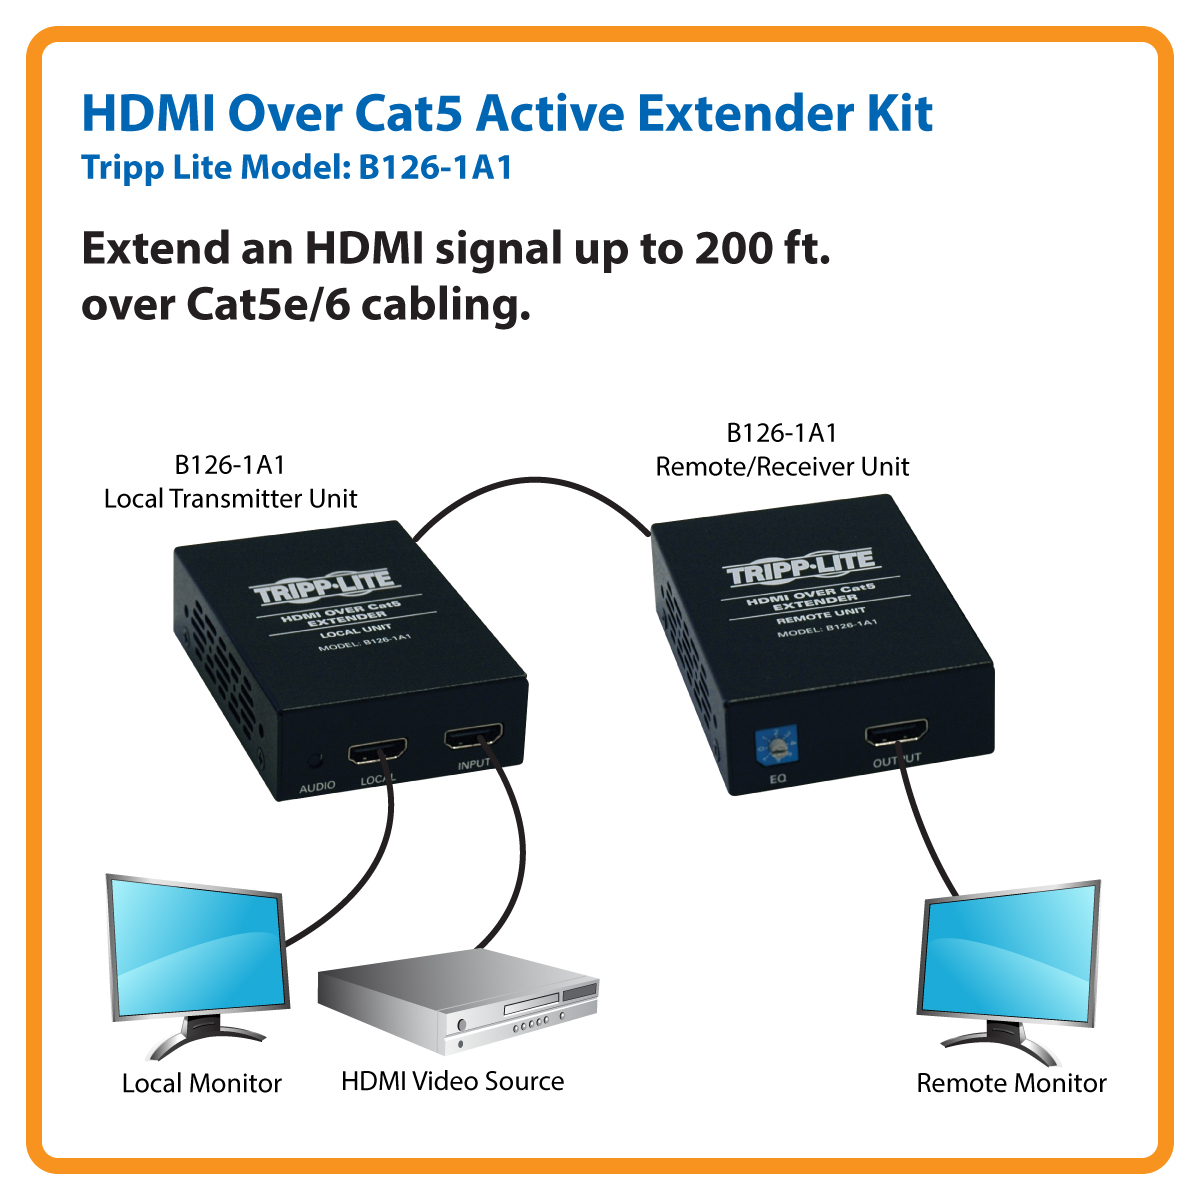 Tripp Lite Hdmi Over Cat5 Cat6 Extender Kit Extended Range Wiring Diagram Active For Top Quality Picture And Sound